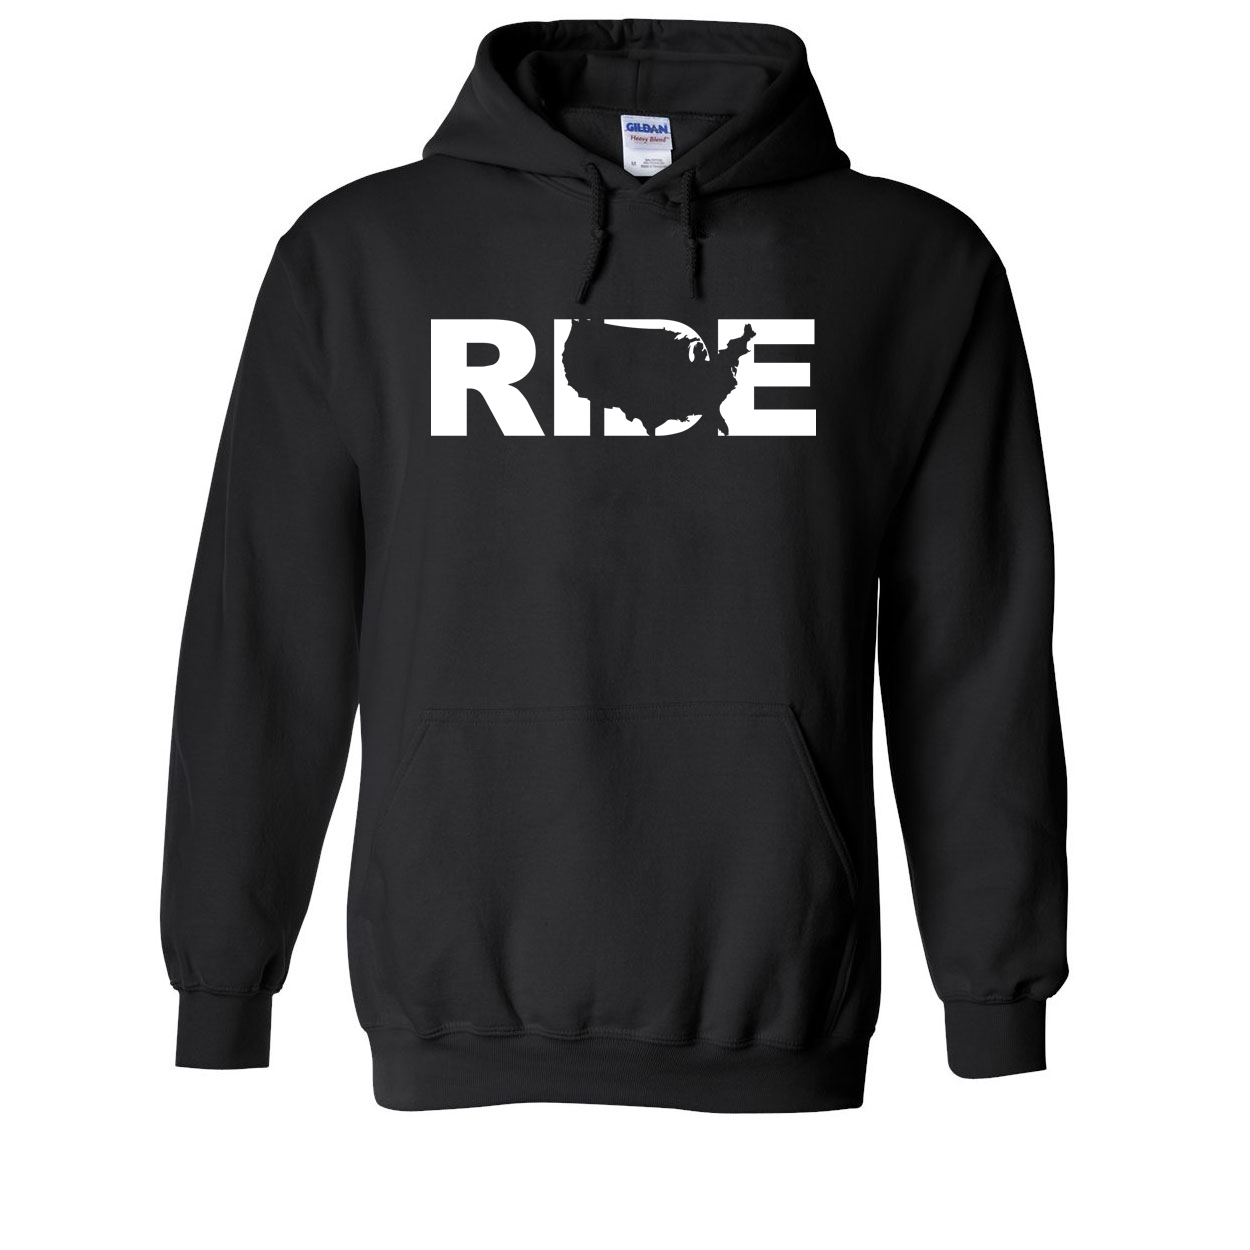 Ride United States Classic Sweatshirt Black (White Logo)